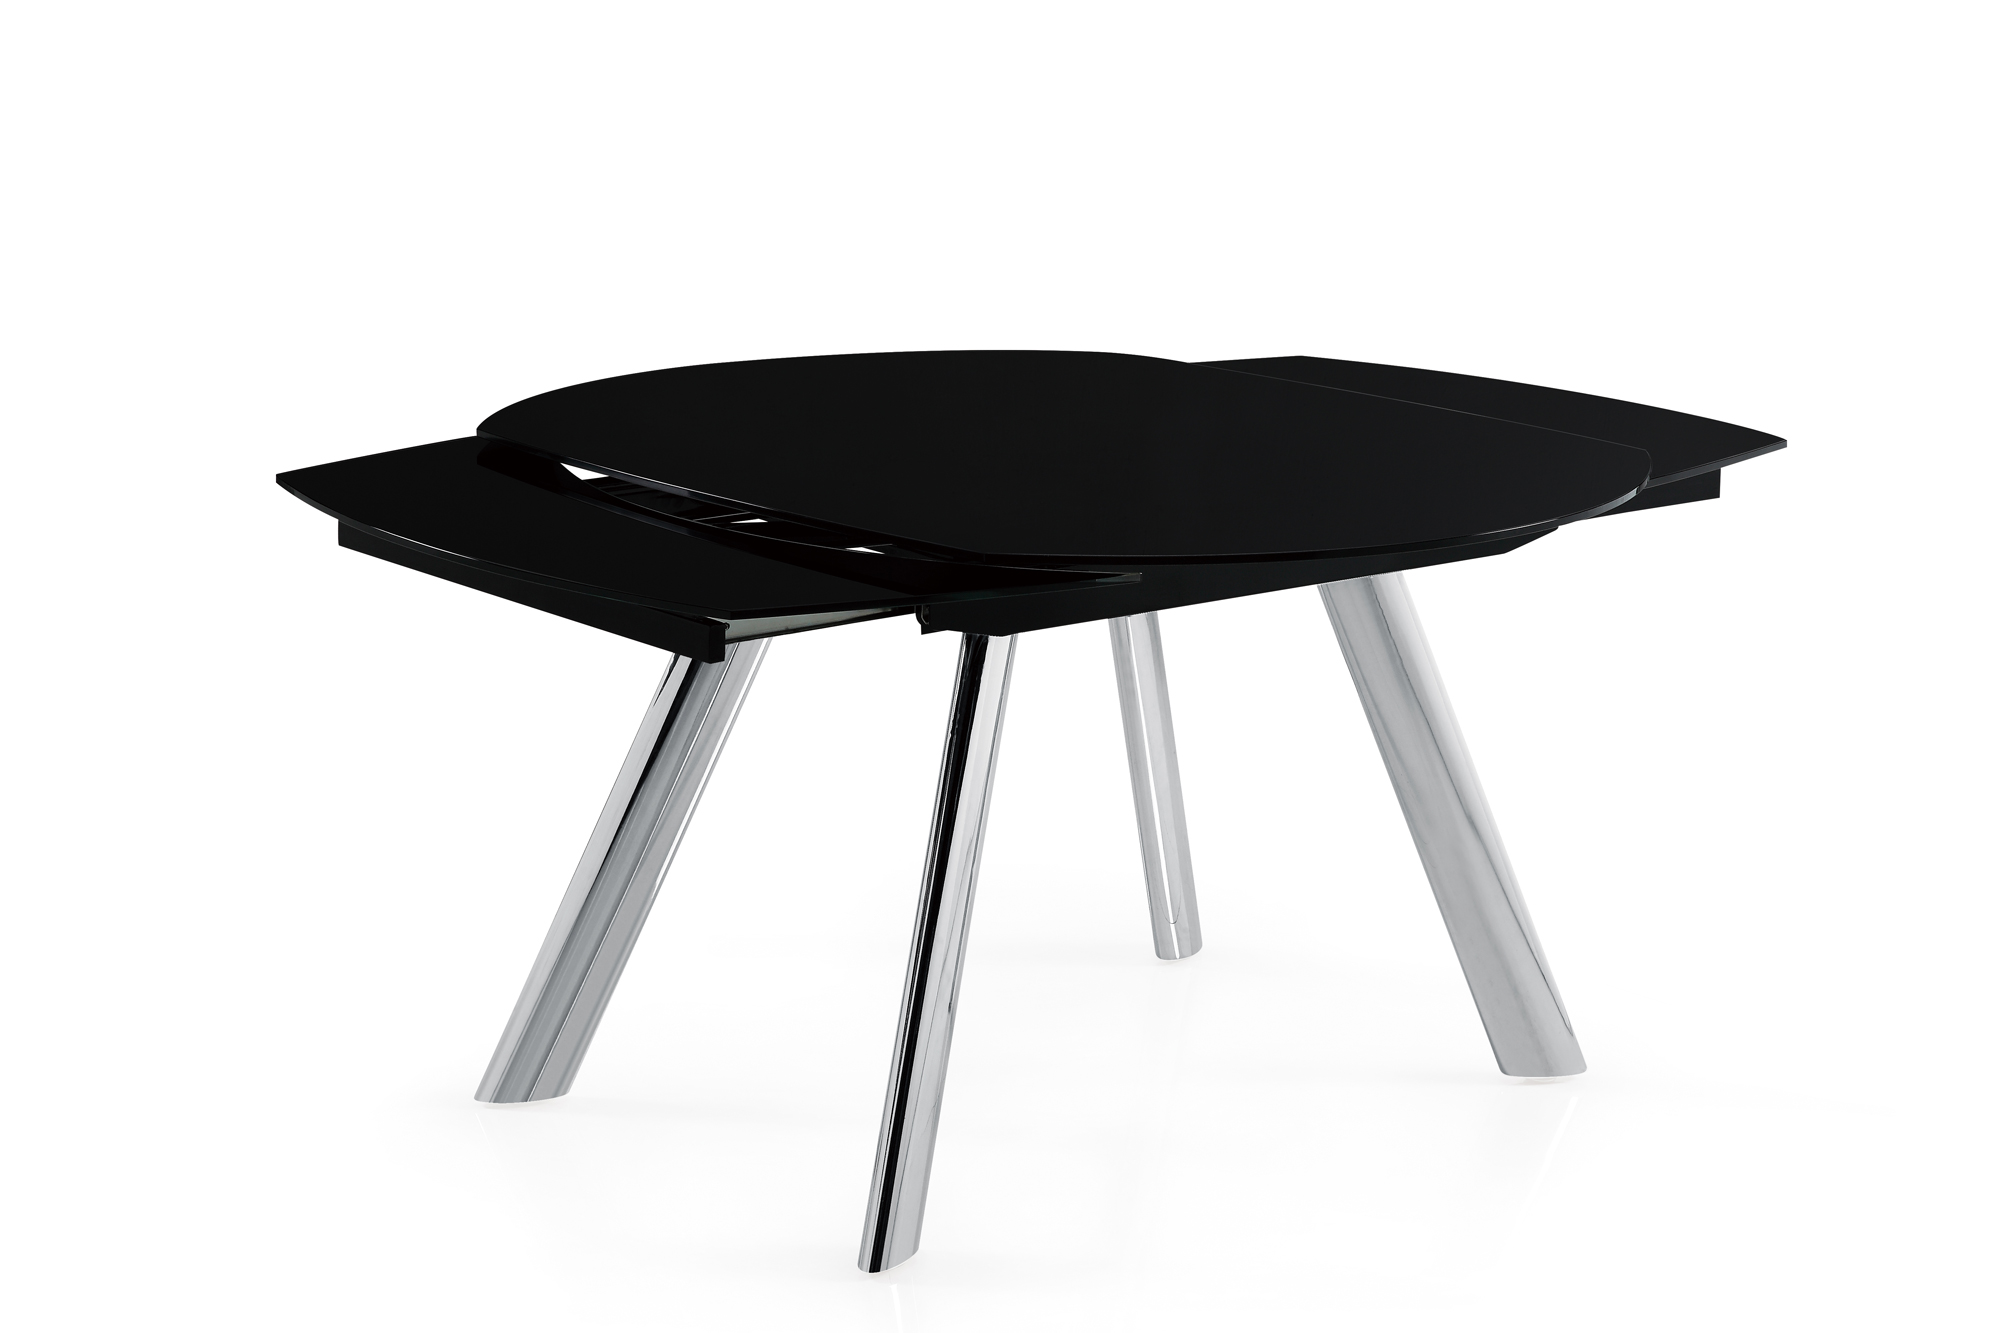 Dining Table D2320DT ChromeBlack Glass Top by Global  : D2320DT3 from futonland.com size 2000 x 1333 jpeg 279kB